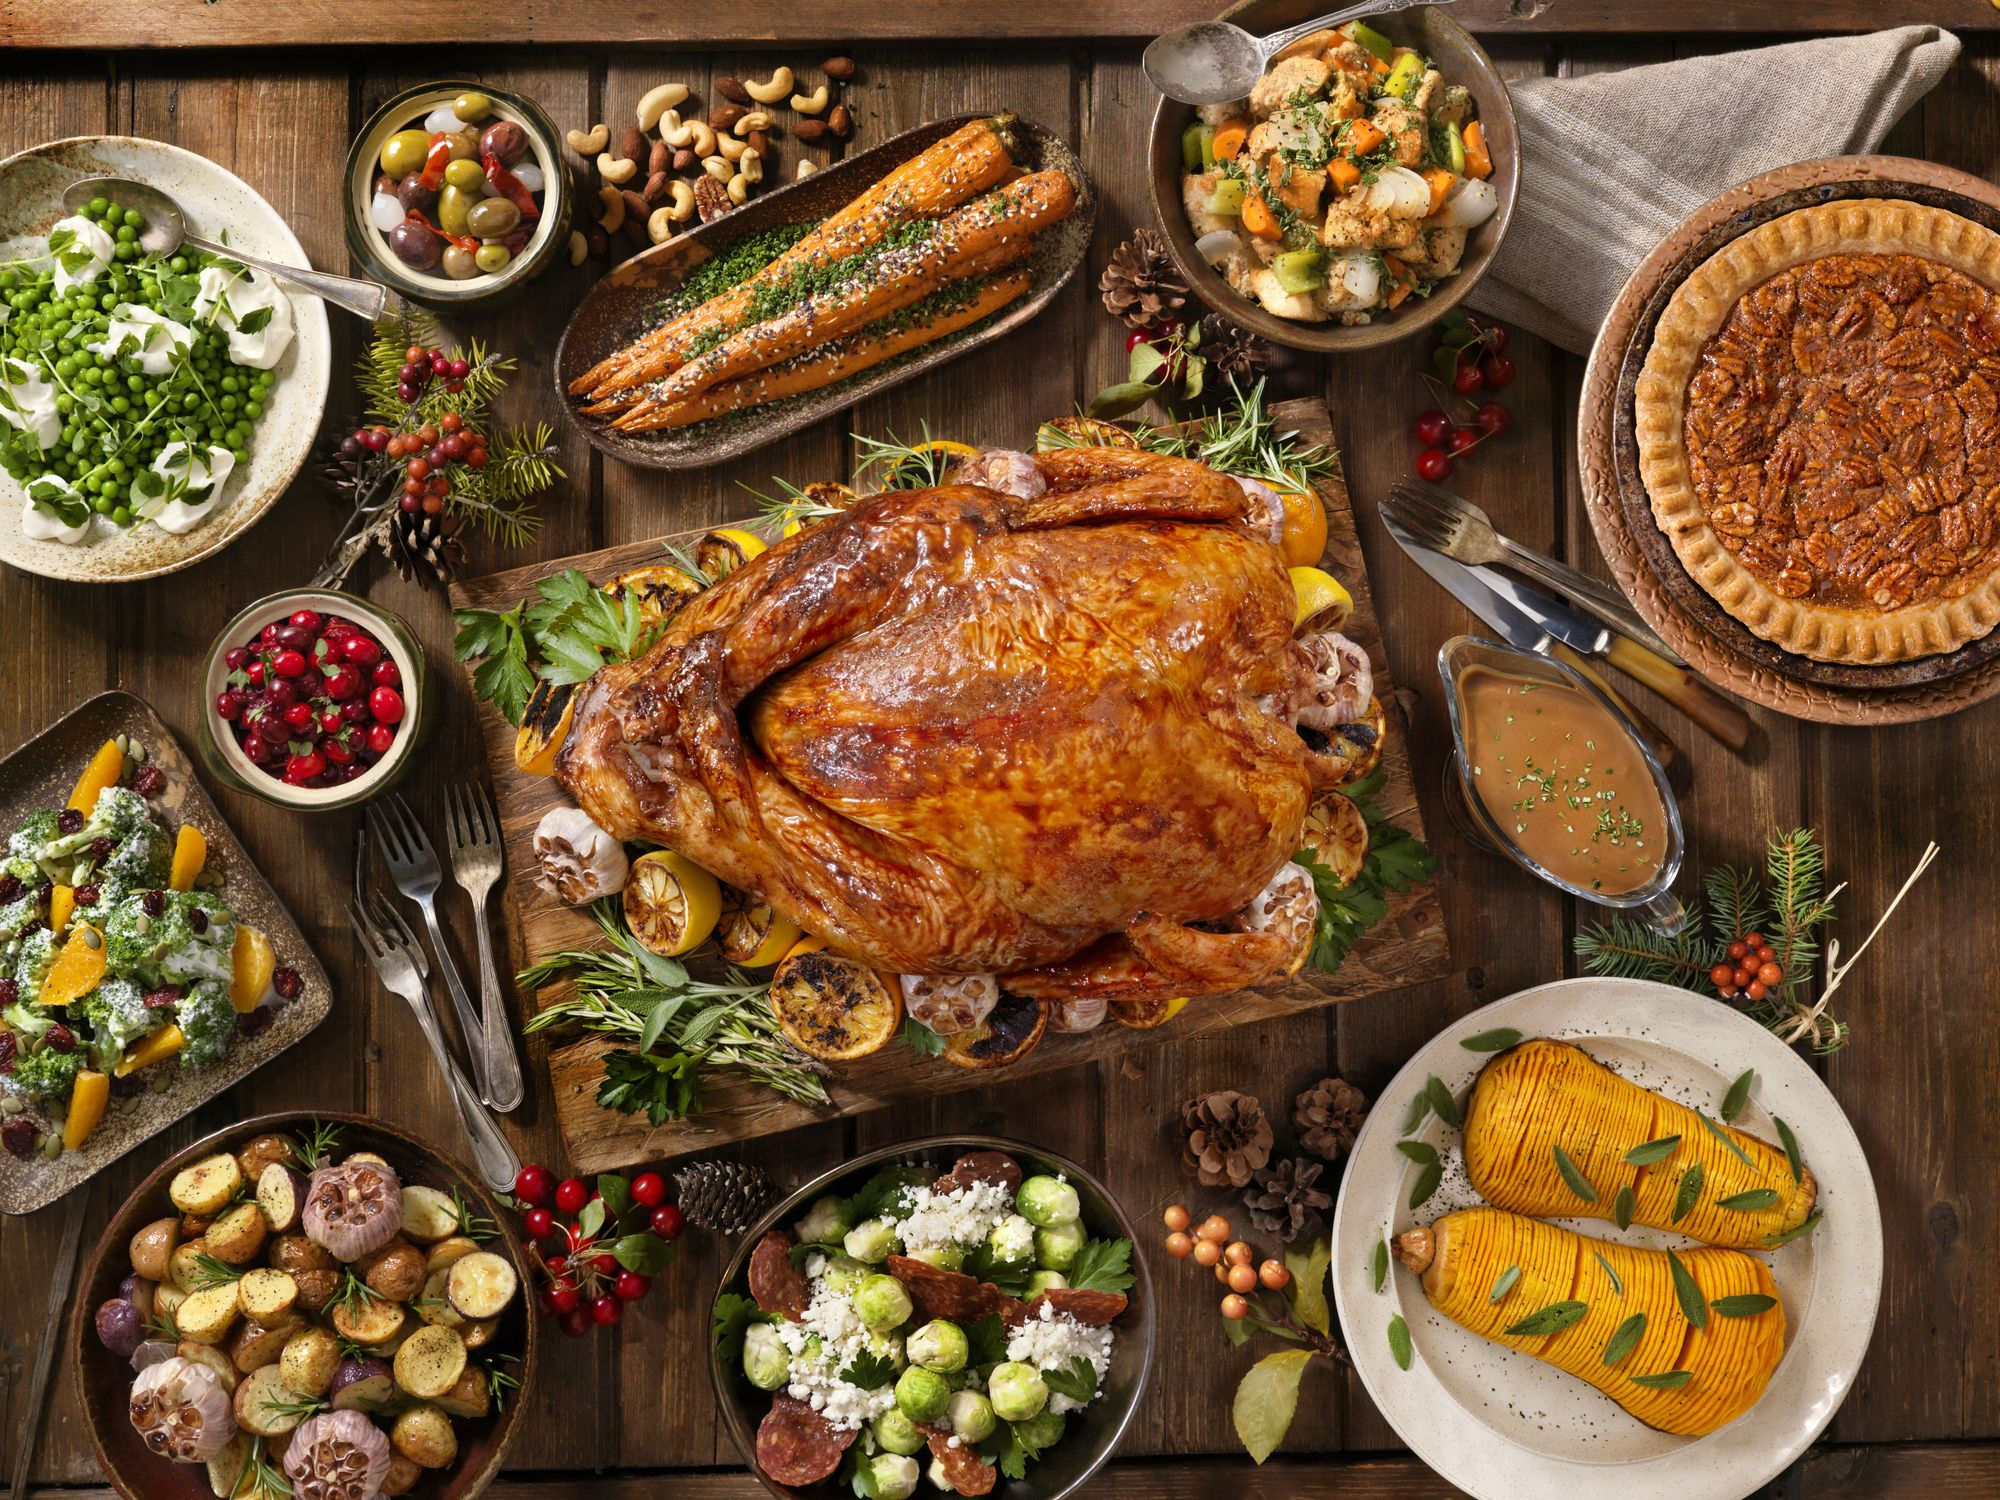 Traditional Thanksgiving Recipes – Dinner For 10 People For Less Than $25!